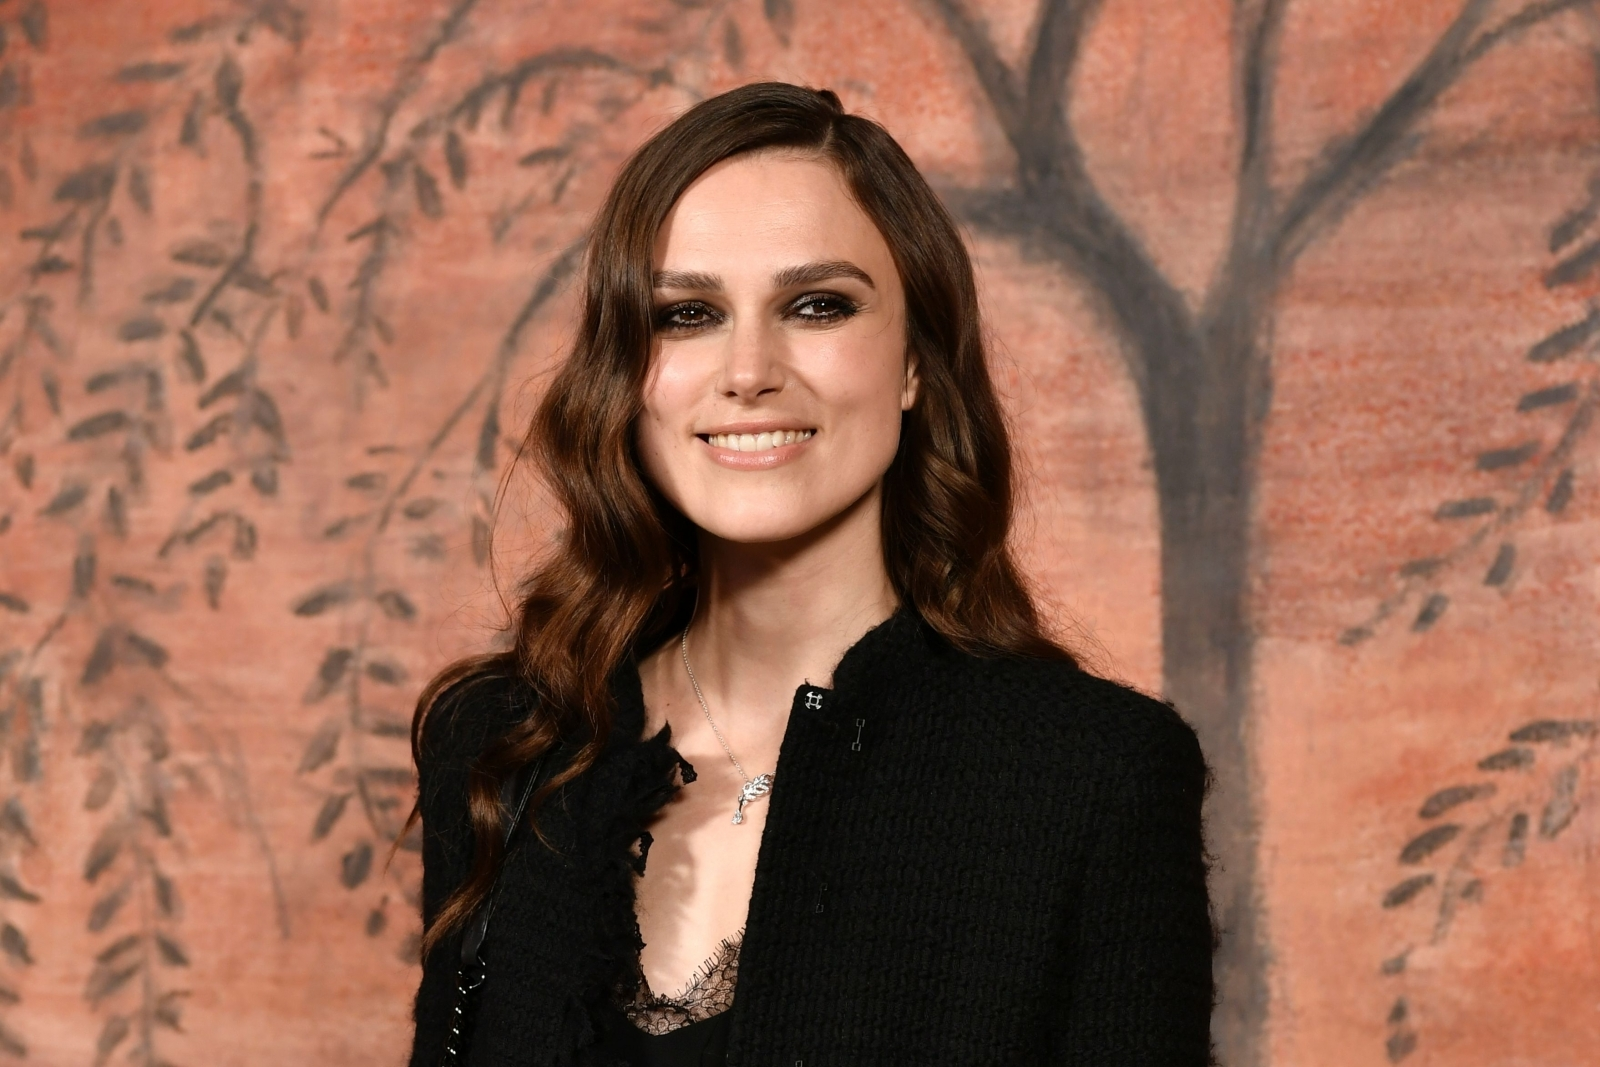 Keira Knightley on the Conversations #MeToo Started for Her